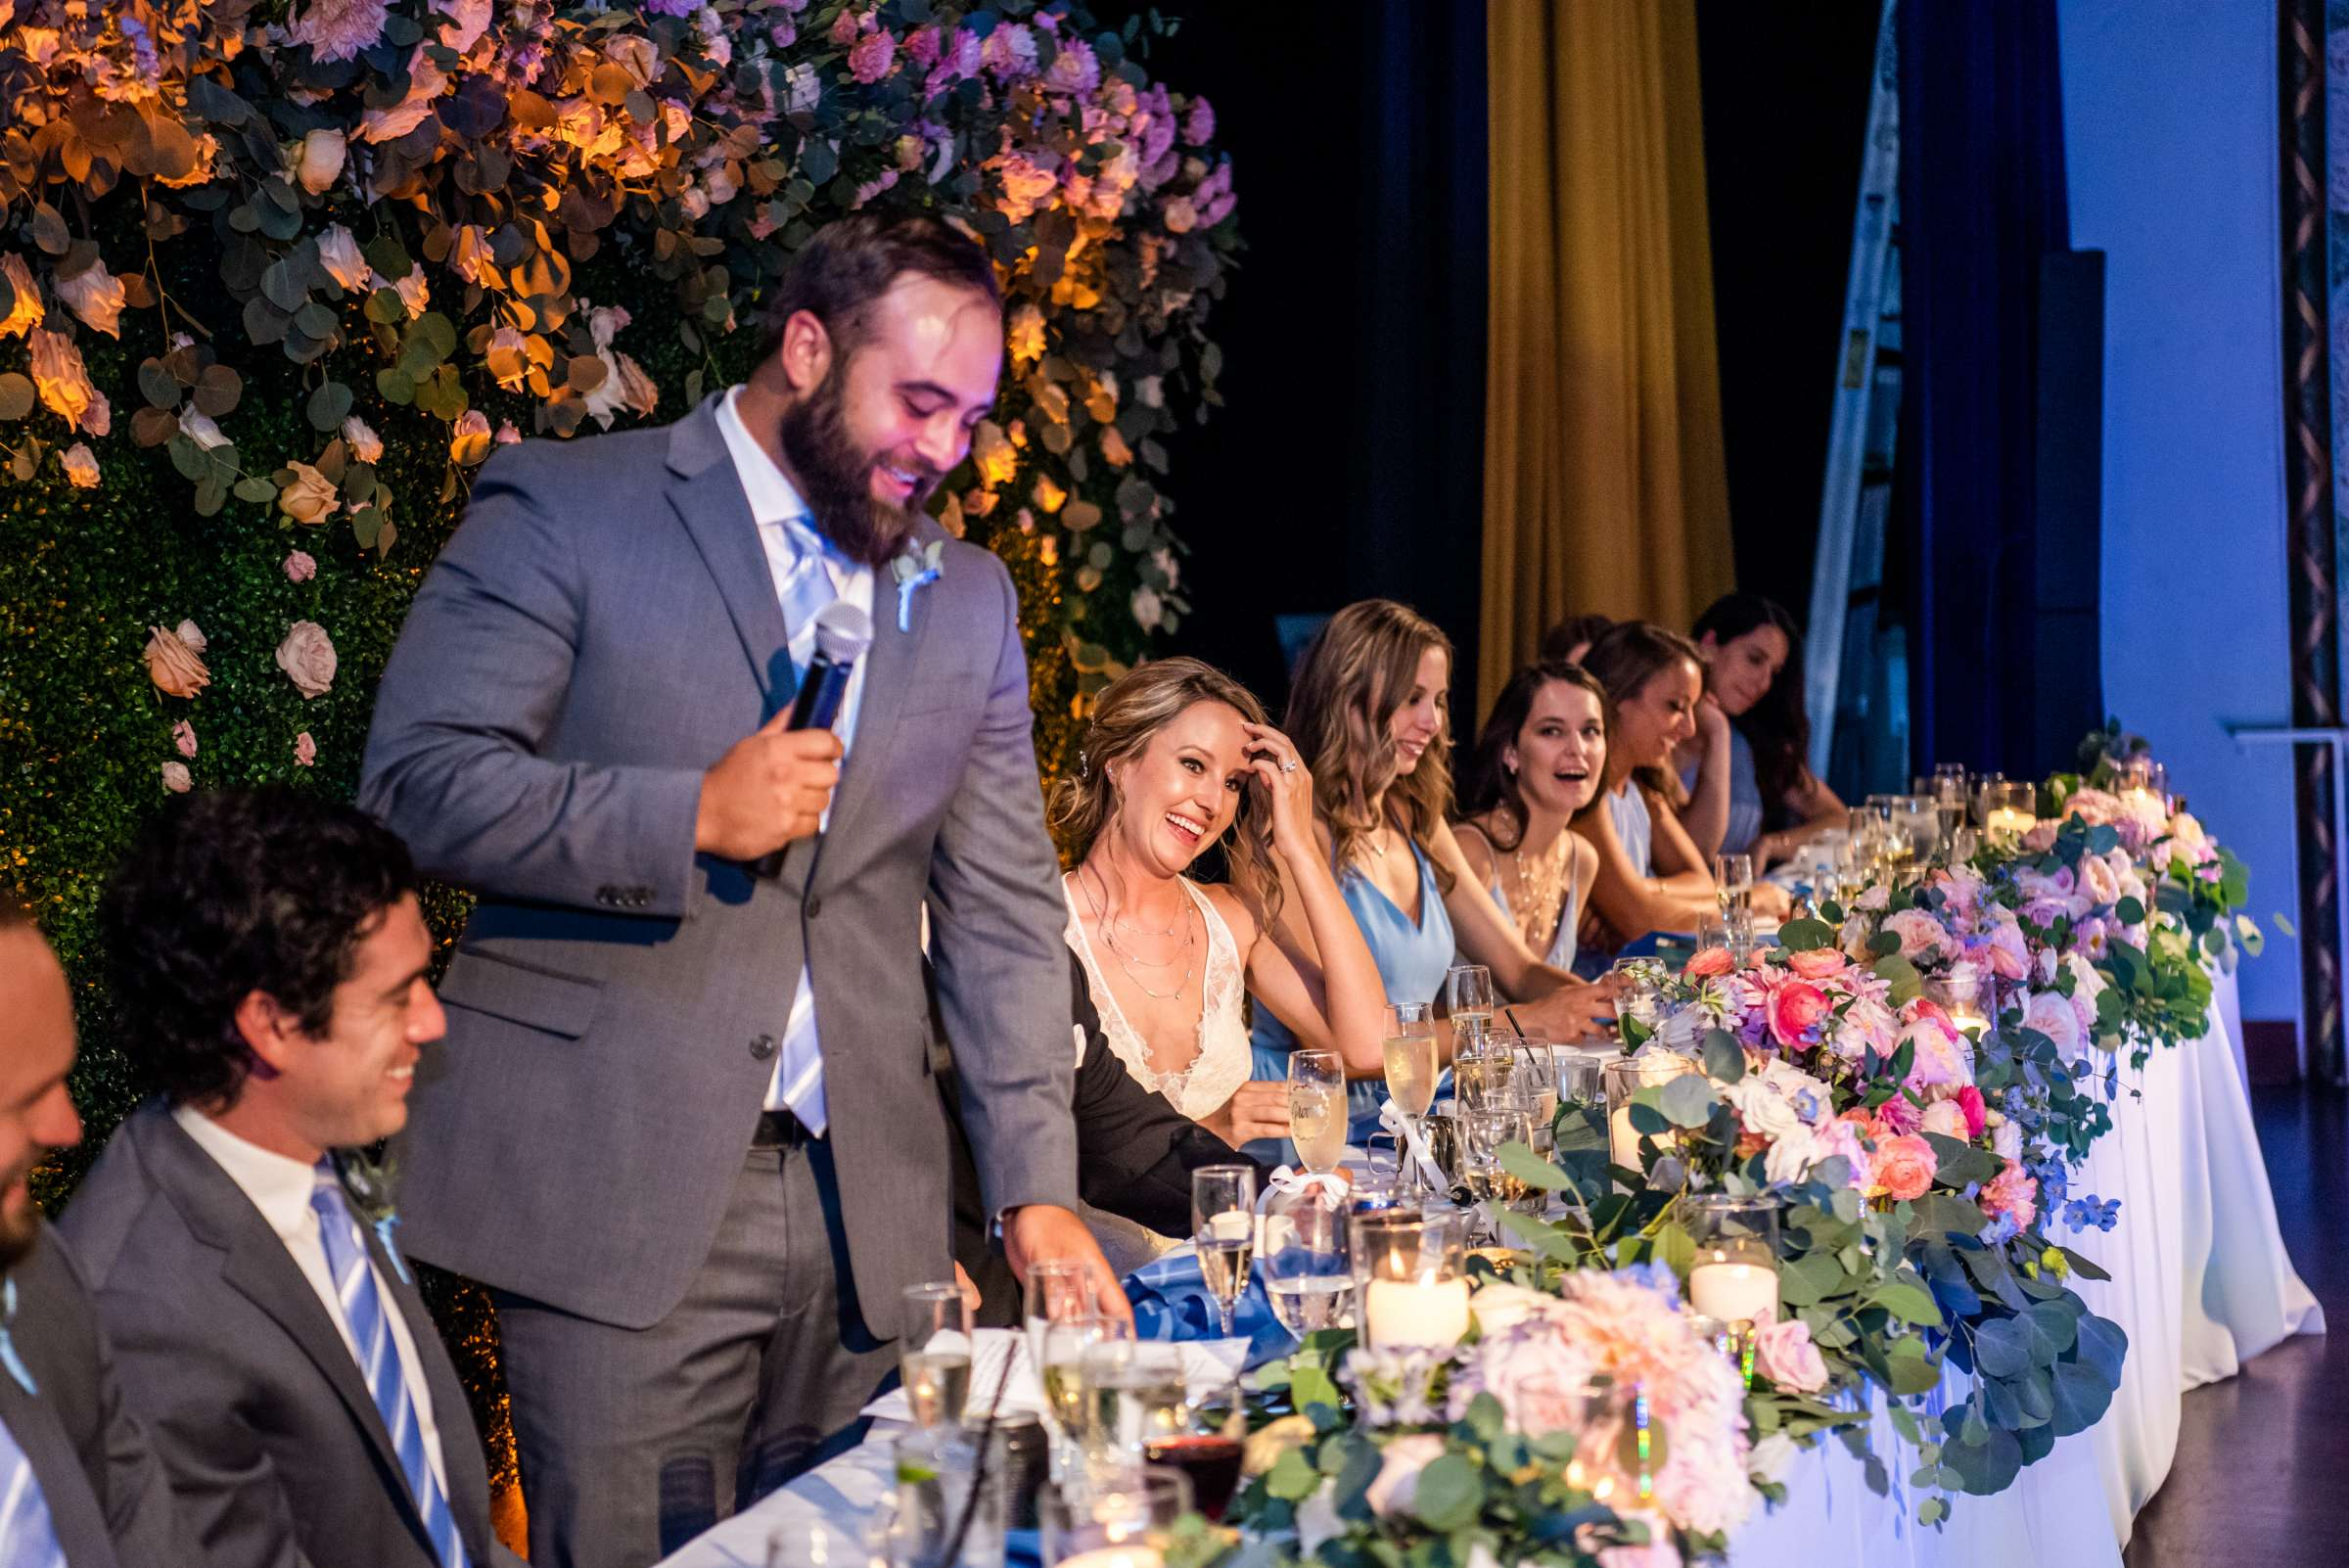 The Prado Wedding coordinated by Bliss Events, Sara and Marvin Wedding Photo #559615 by True Photography